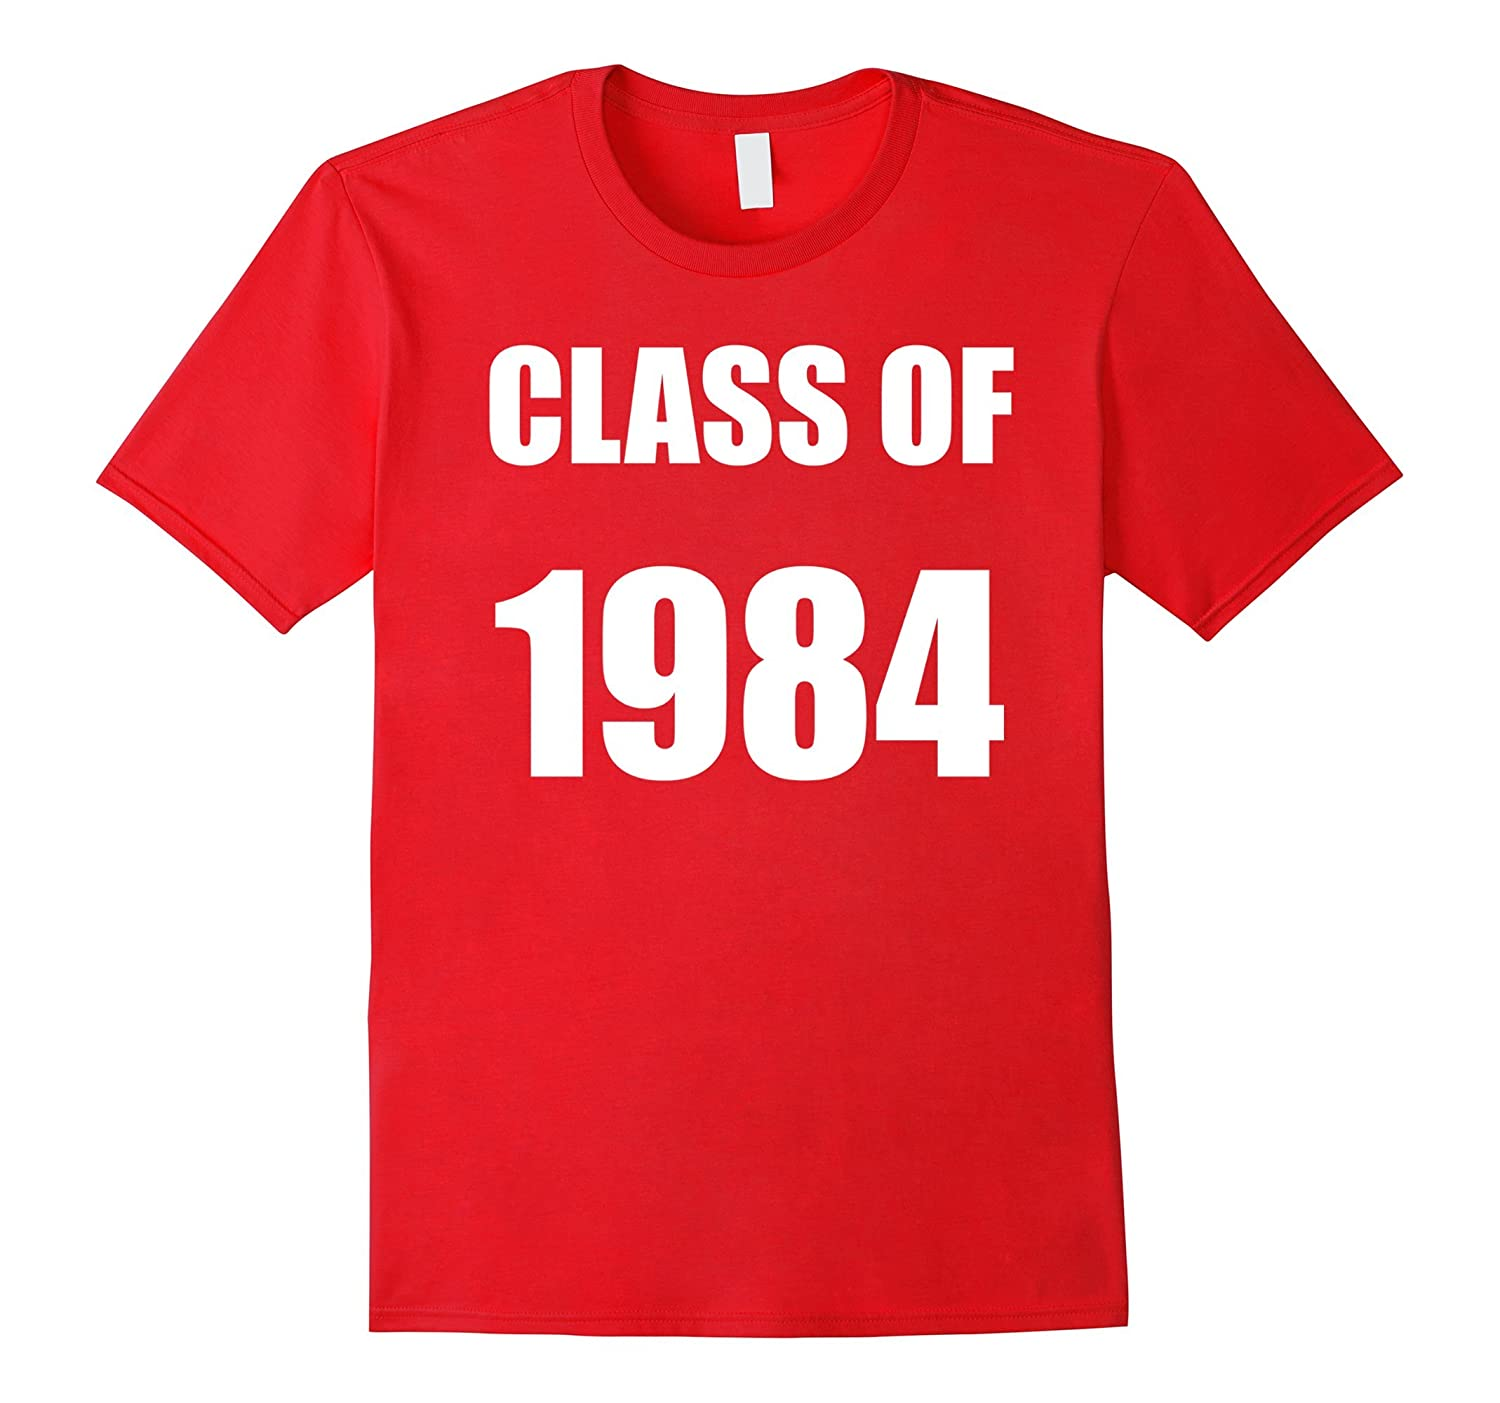 Class of 1984 Popular School Year Classic Design T-shirt-CL